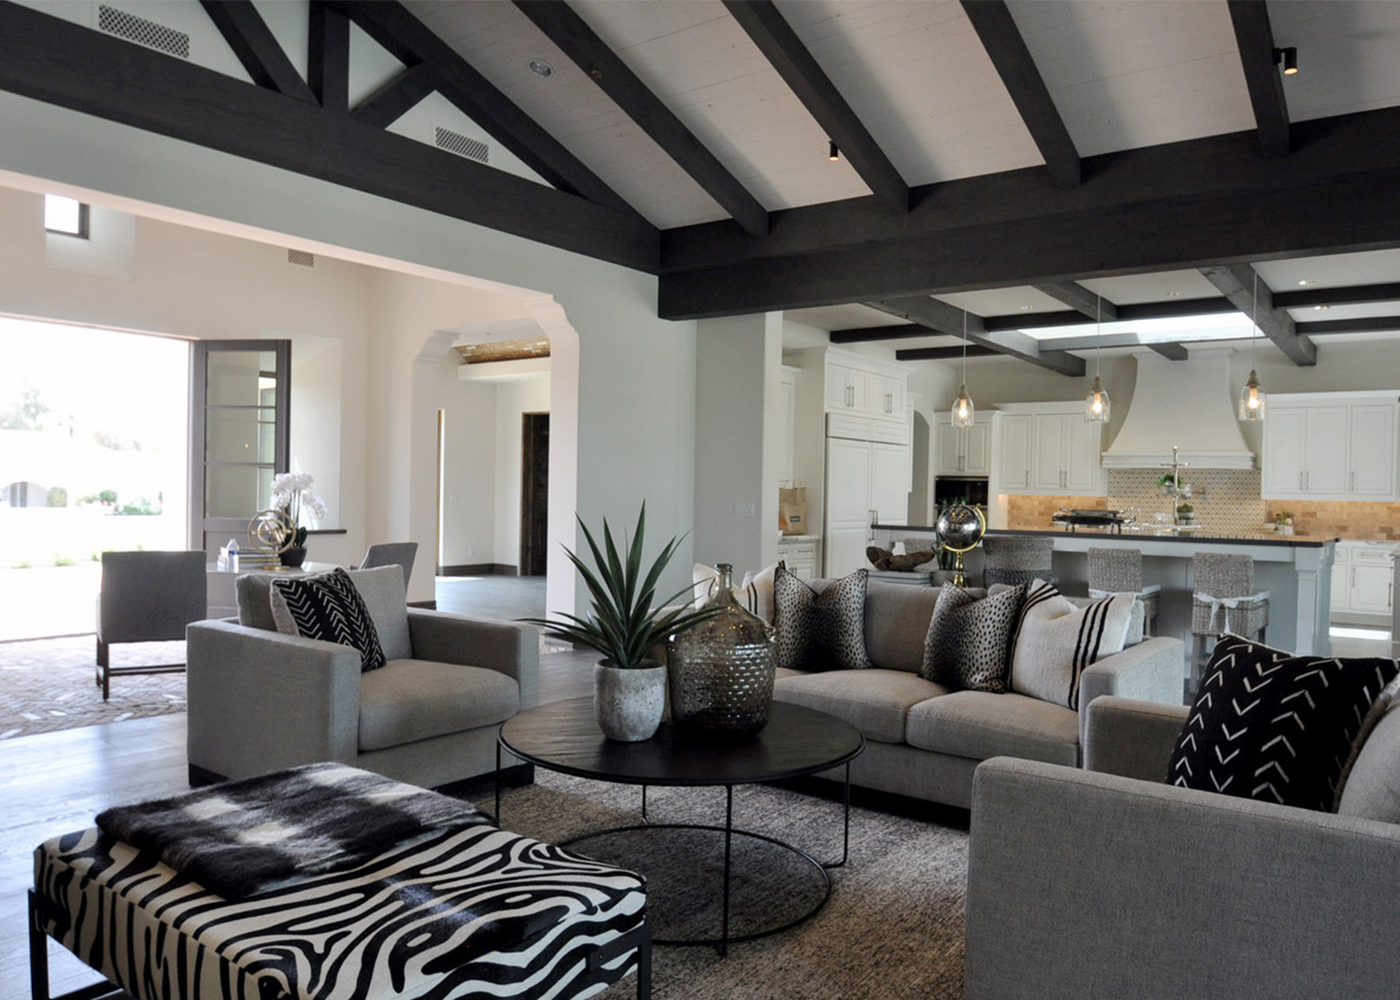 bungalow-furniture-paradise-valley-styling-living-room.jpg